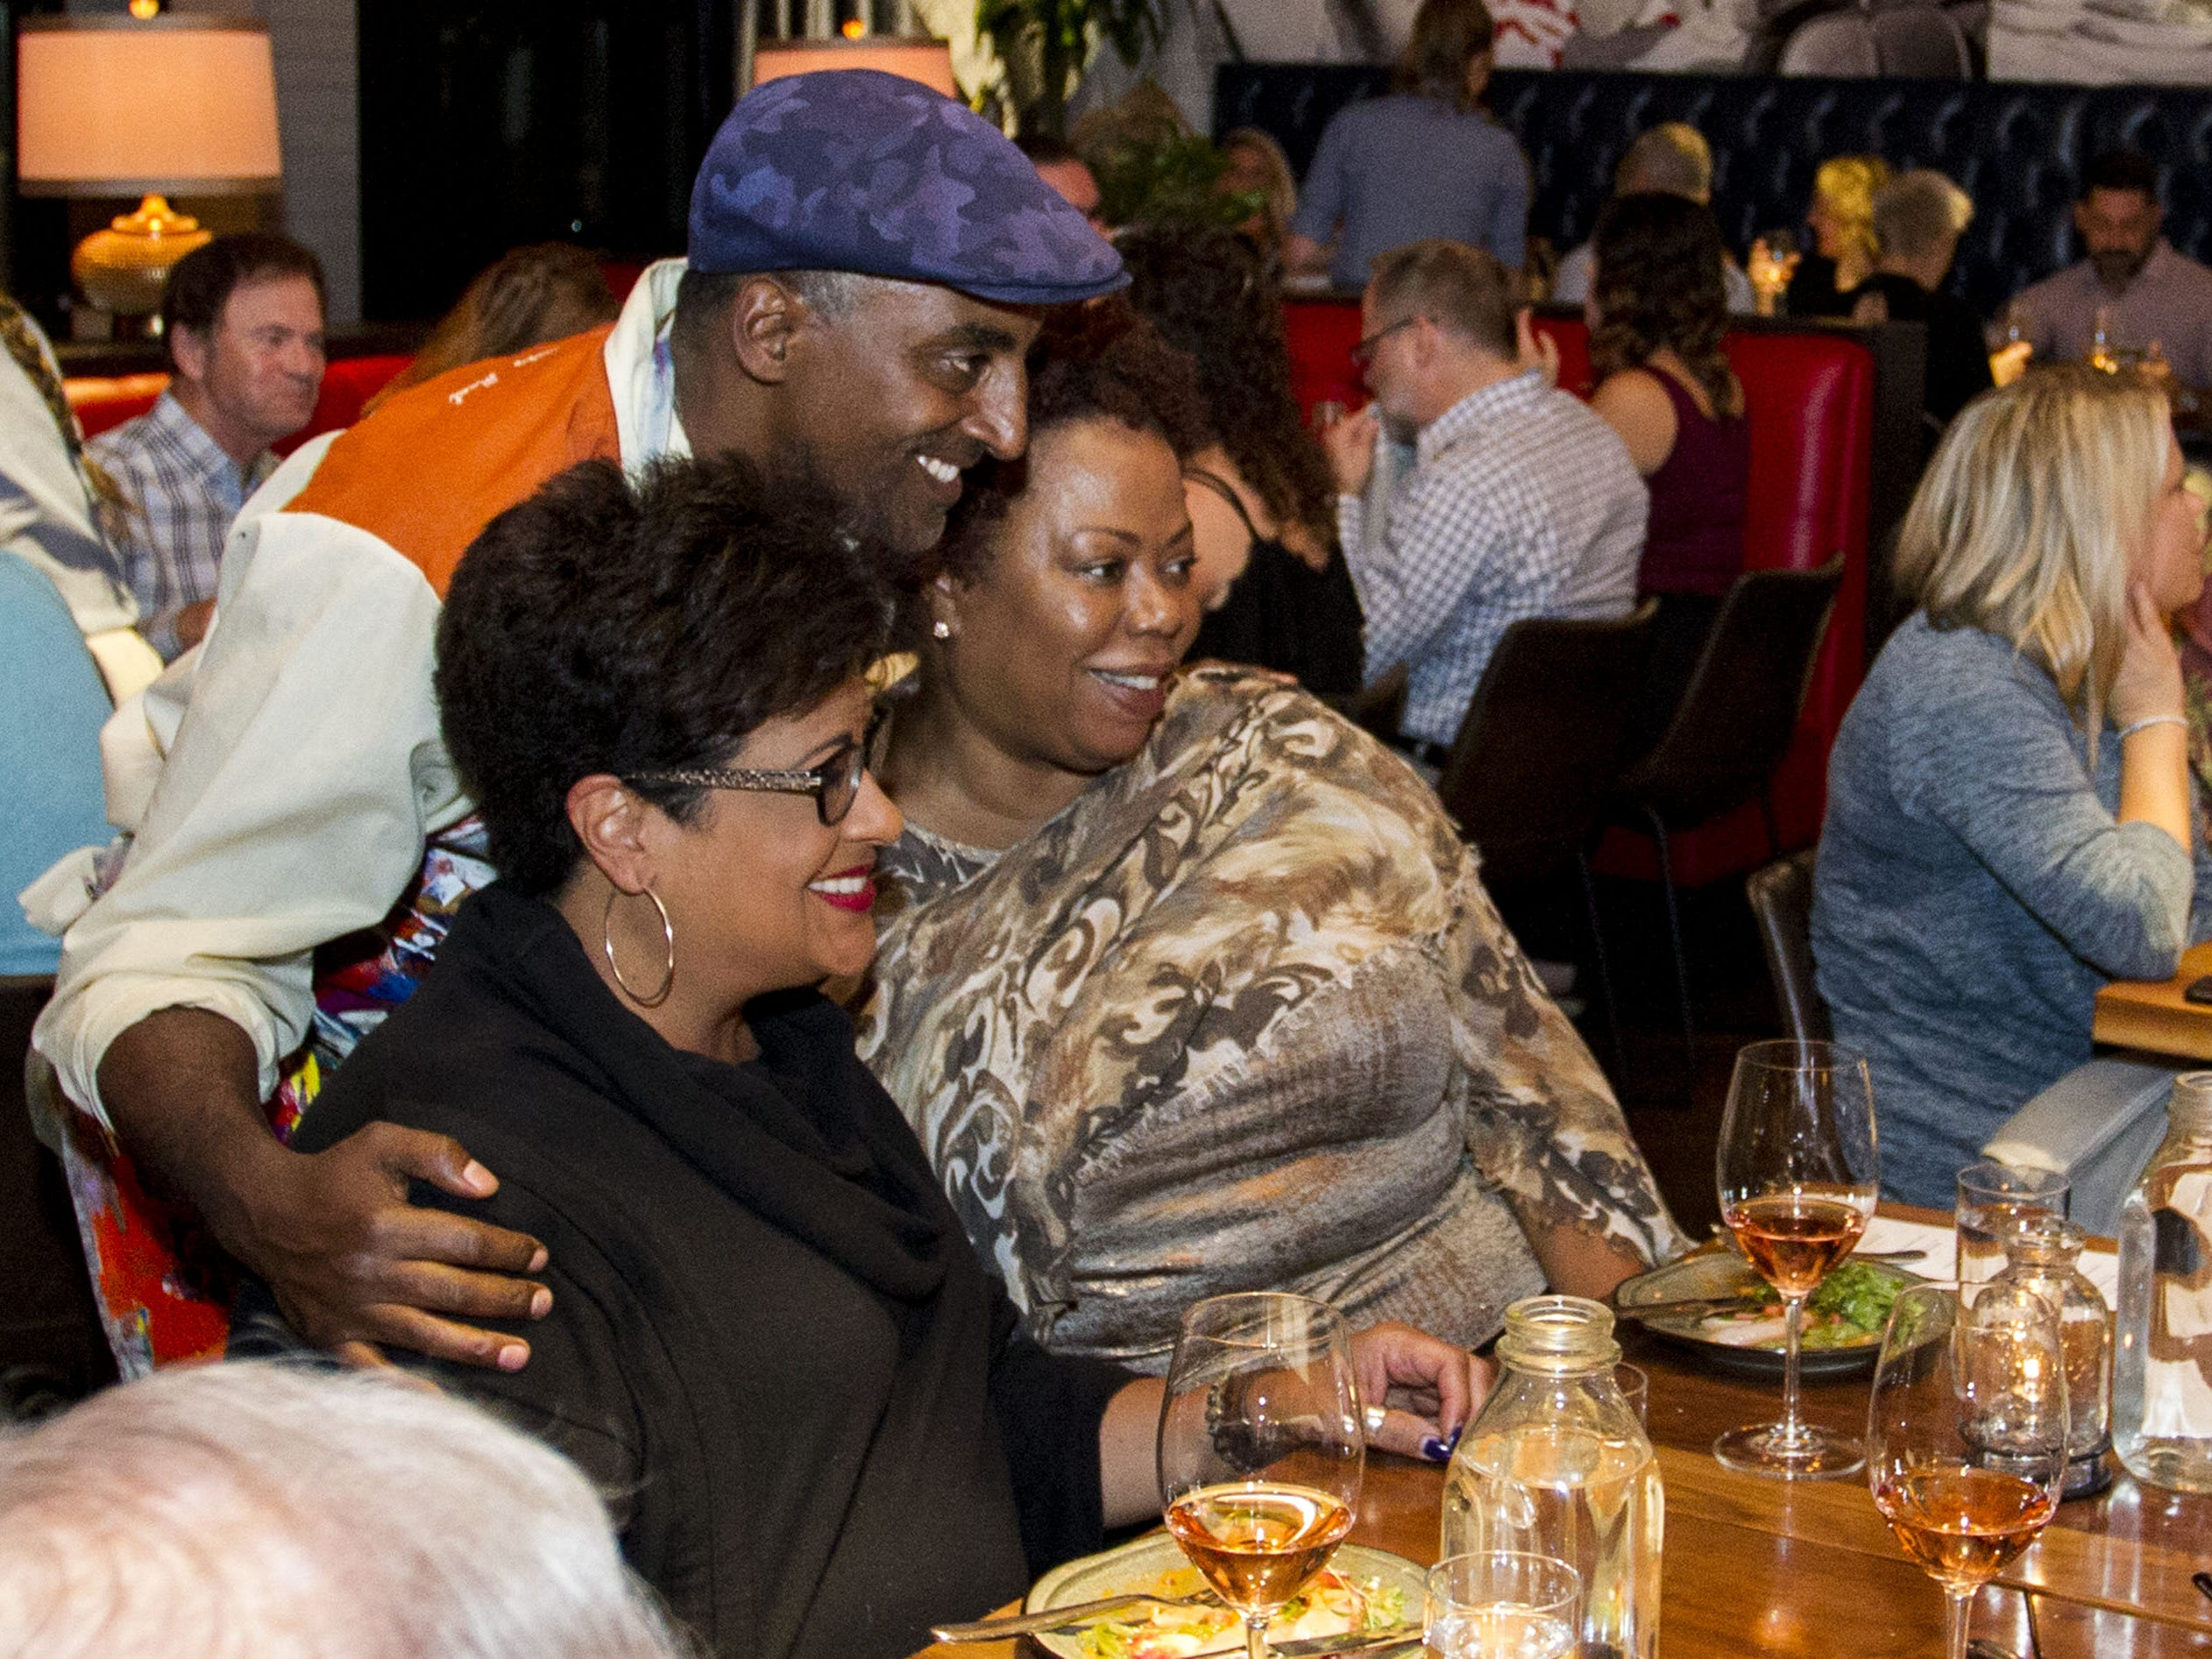 Chef Marcus Samuelsson poses with Julie Rideau and Jean Miller-Aikens during the exclusive kickoff dining event at Mora Italian for azcentral Wine & Food Experience.